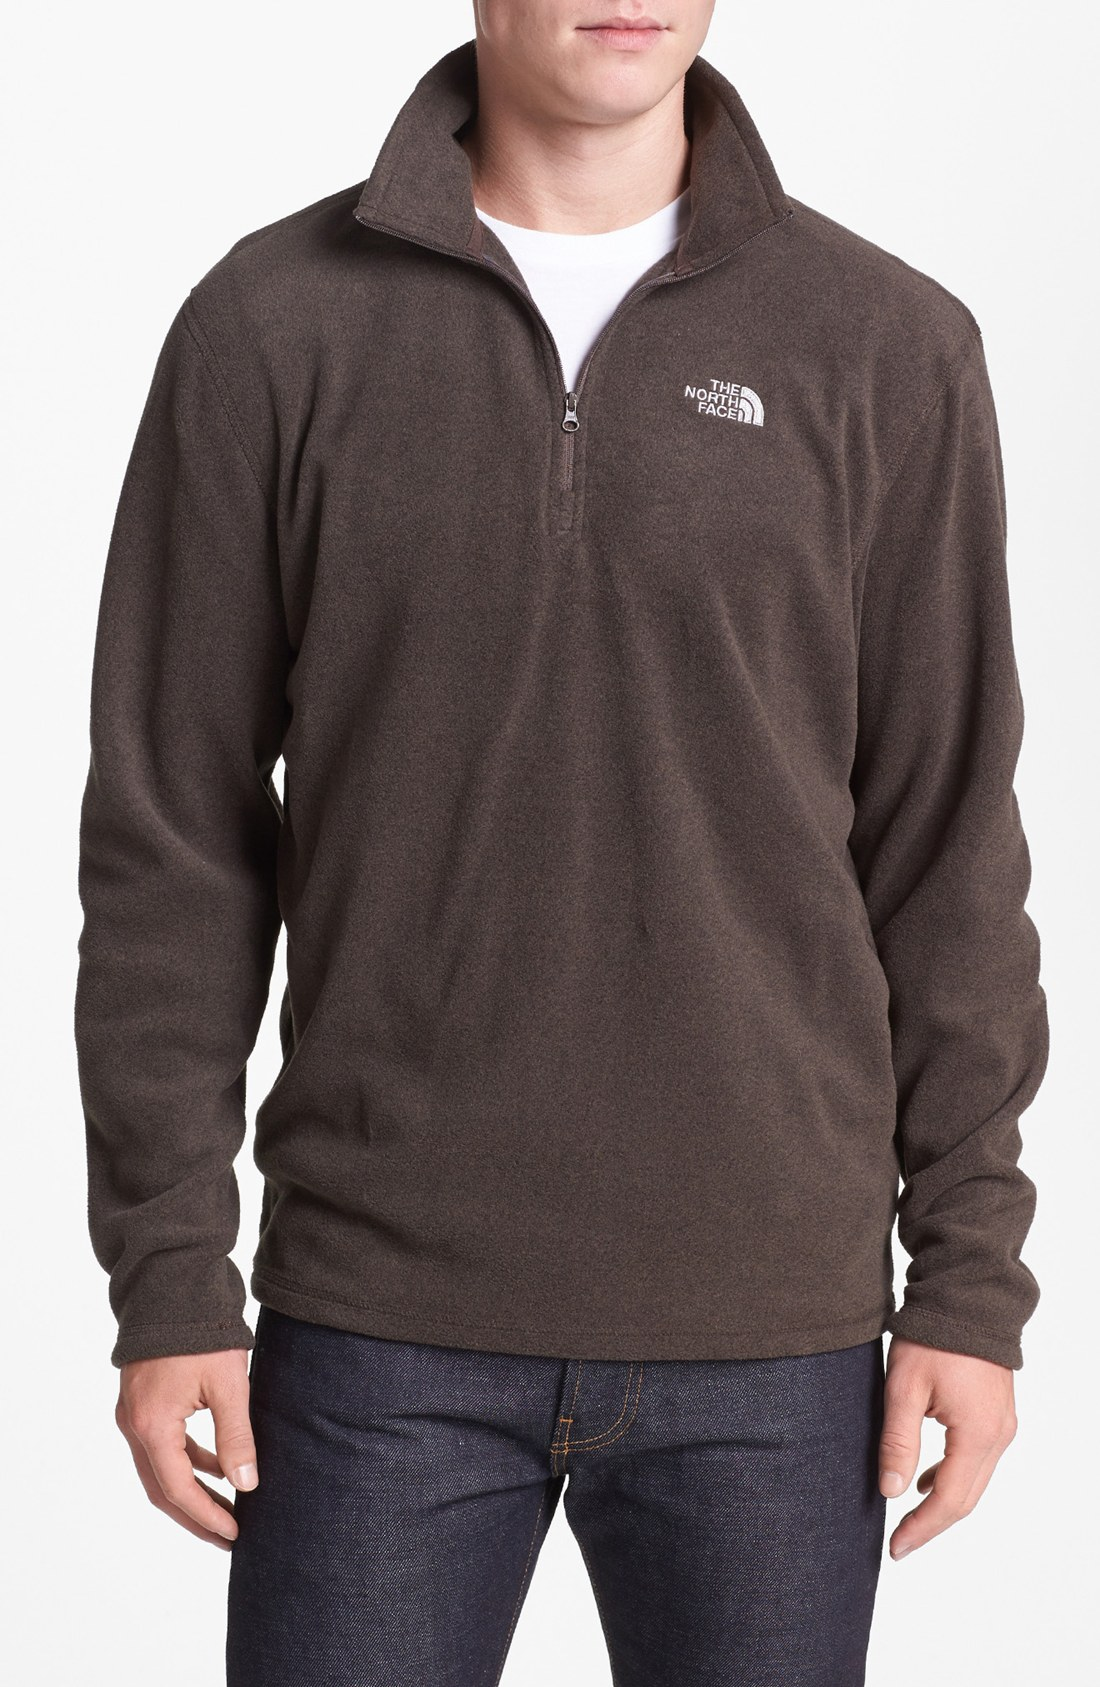 the-north-face-coffee-brown-heather-tka-100-microvelour-glacier-quarter-zip- fleece-pullover-product-1-13868309-178381152.jpeg